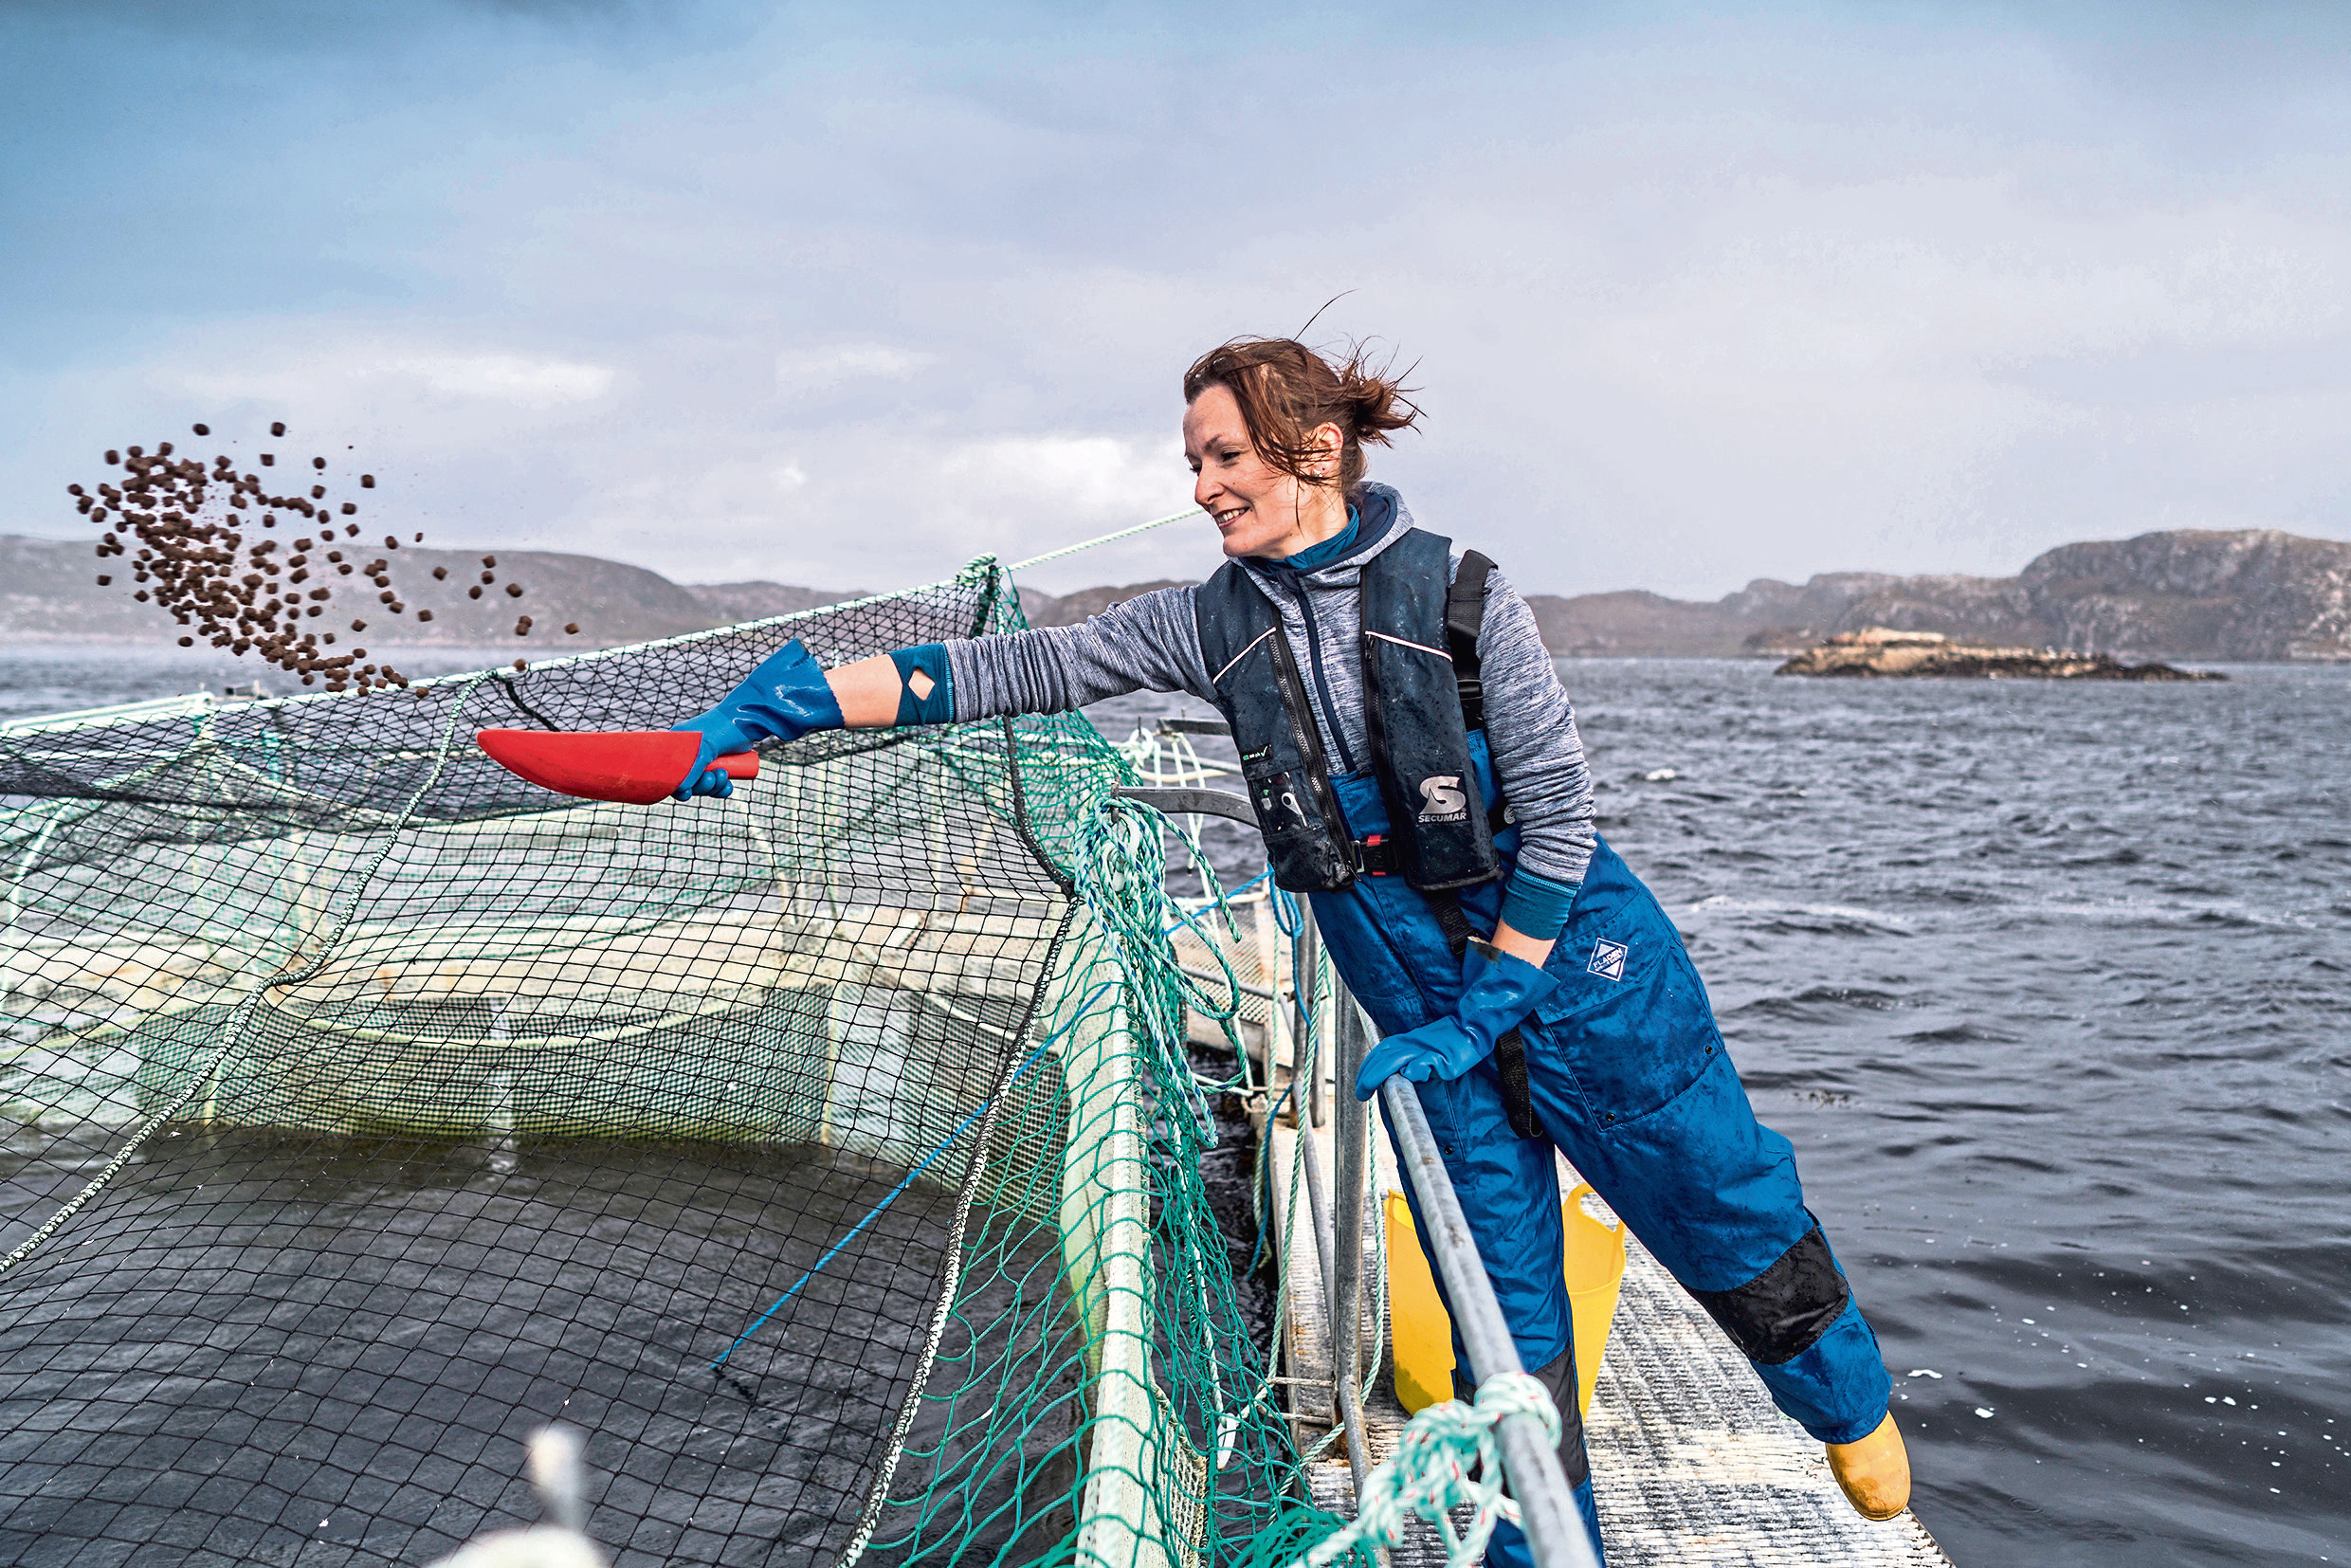 Hand feeding at Loch Duart, the respected salmon farming company which is committed to investing in its local community